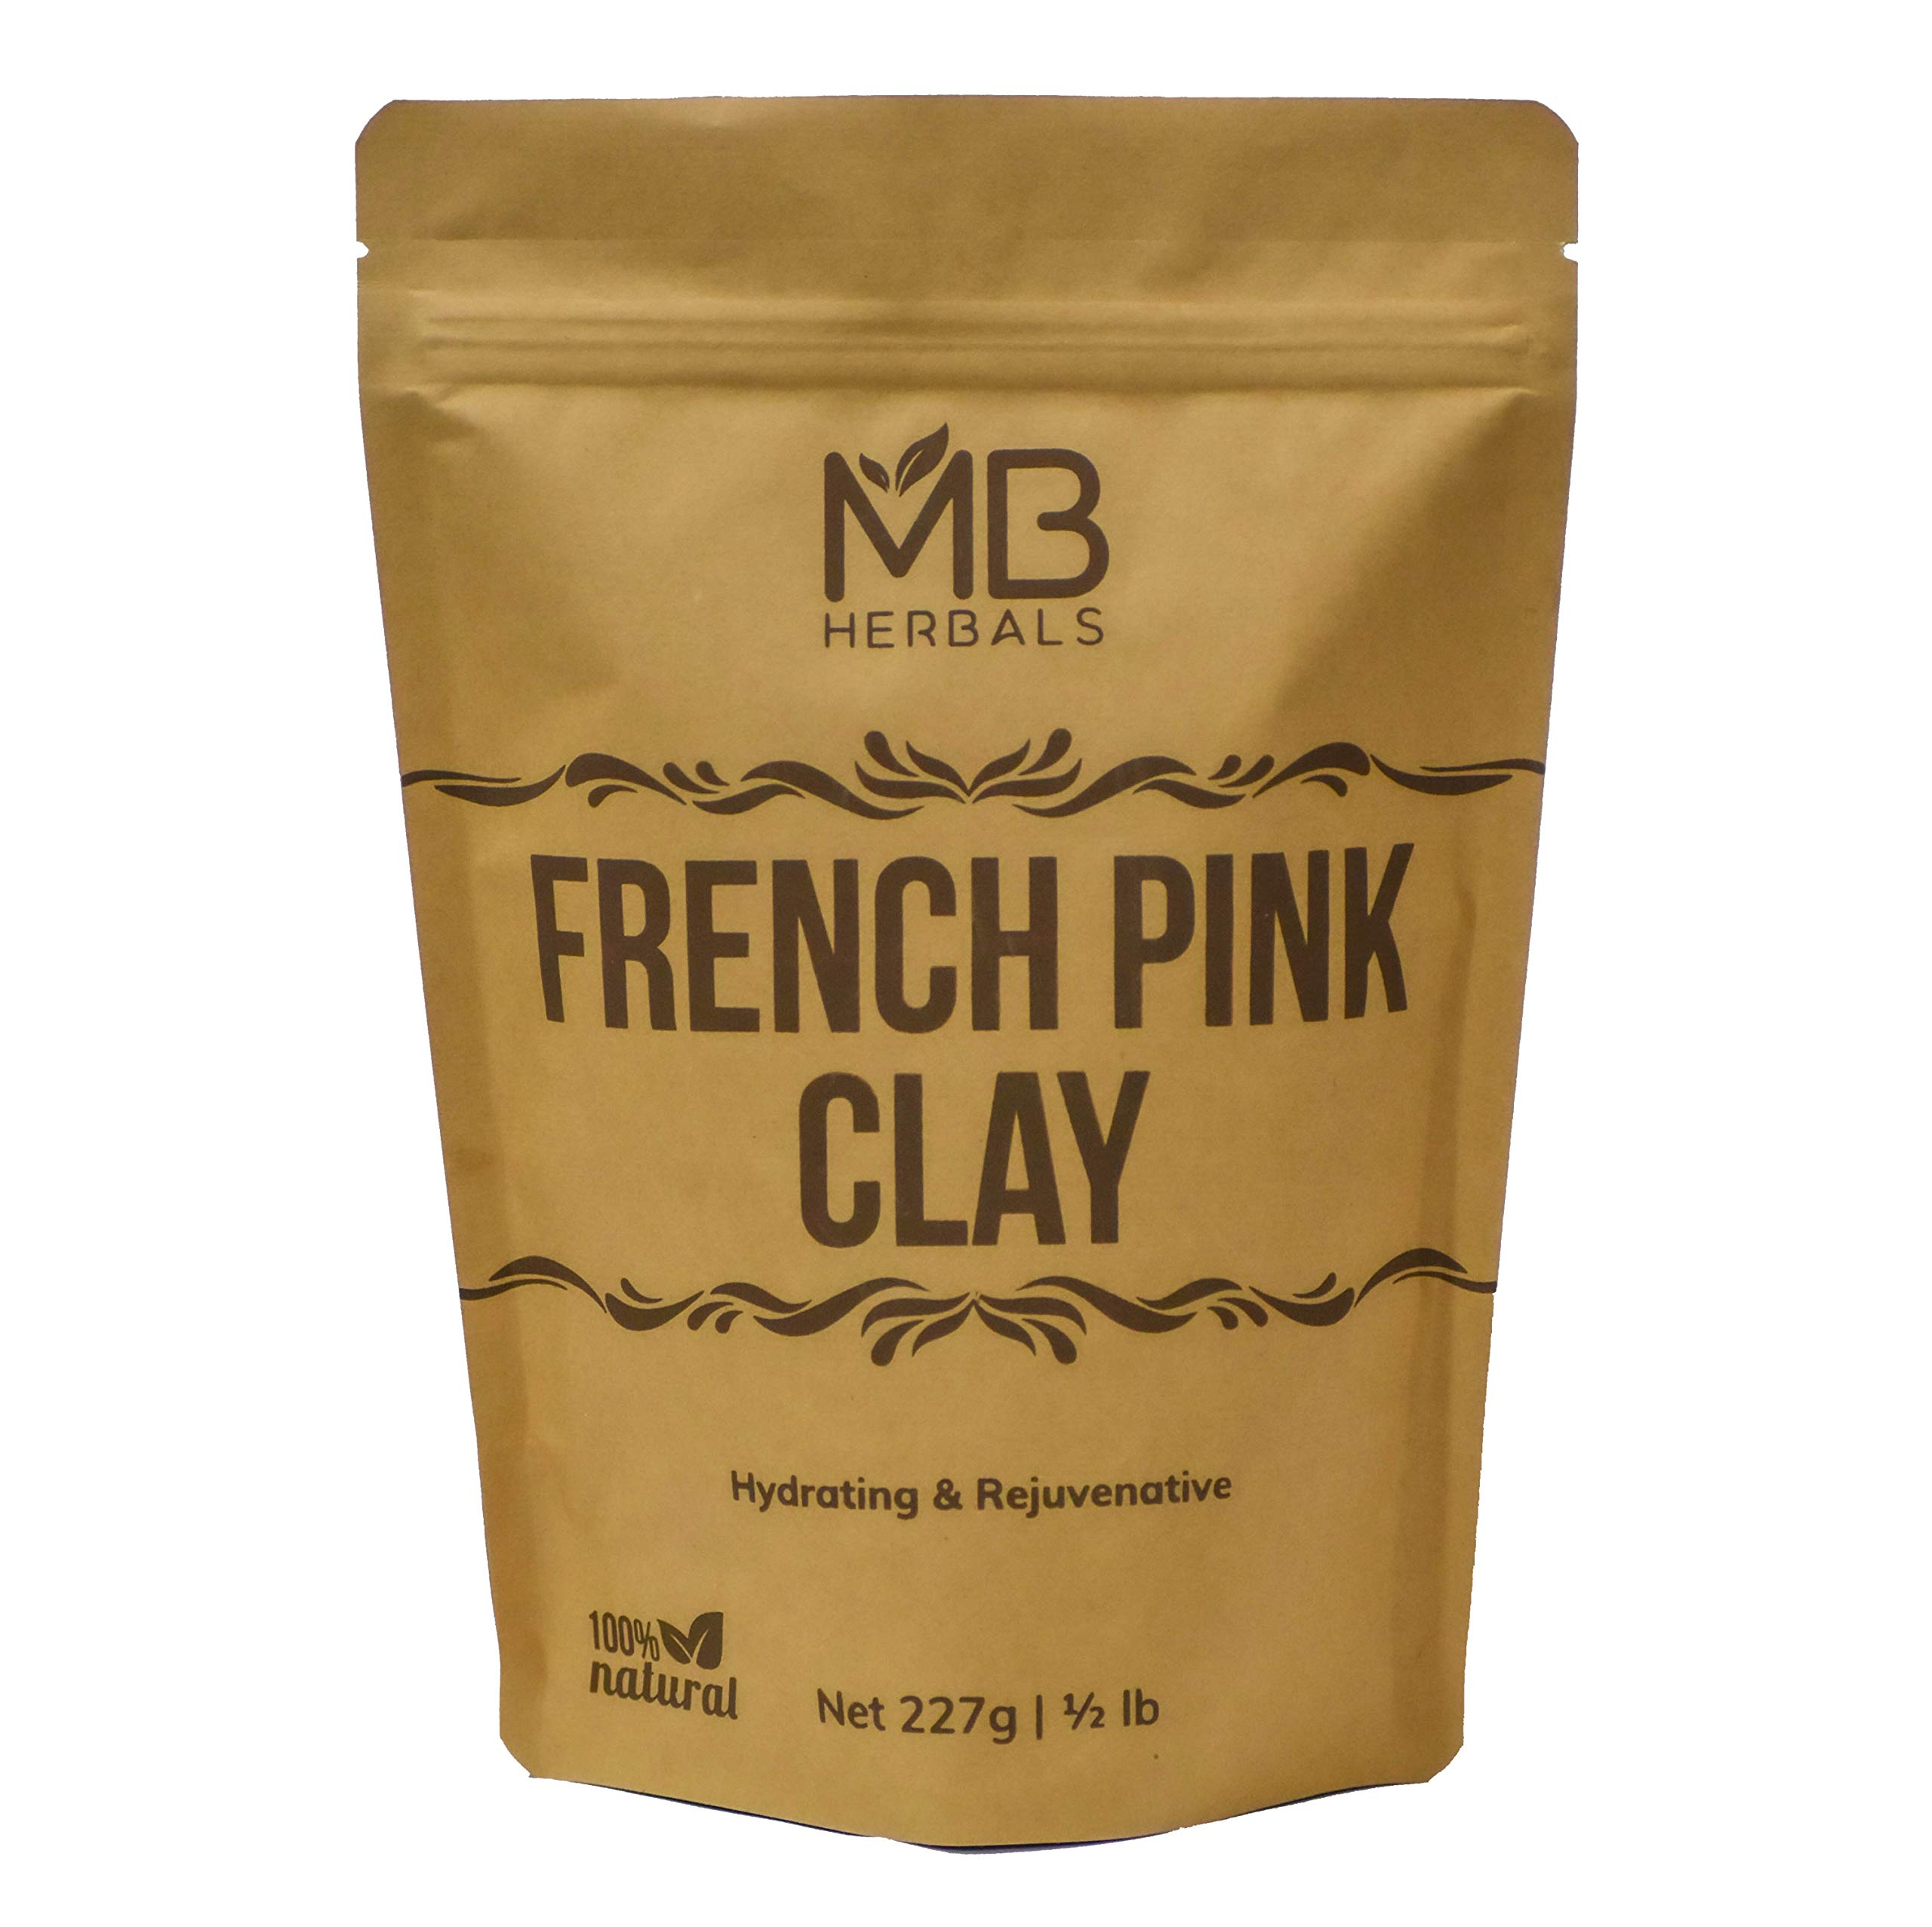 MB Herbals French Pink Clay 227g (Half Pound)   Montmorrillonite Pink Clay (French Rose Clay)   Mild, Hydrating Clay suitable for Sensitive, Matured & Acne-Prone Skin